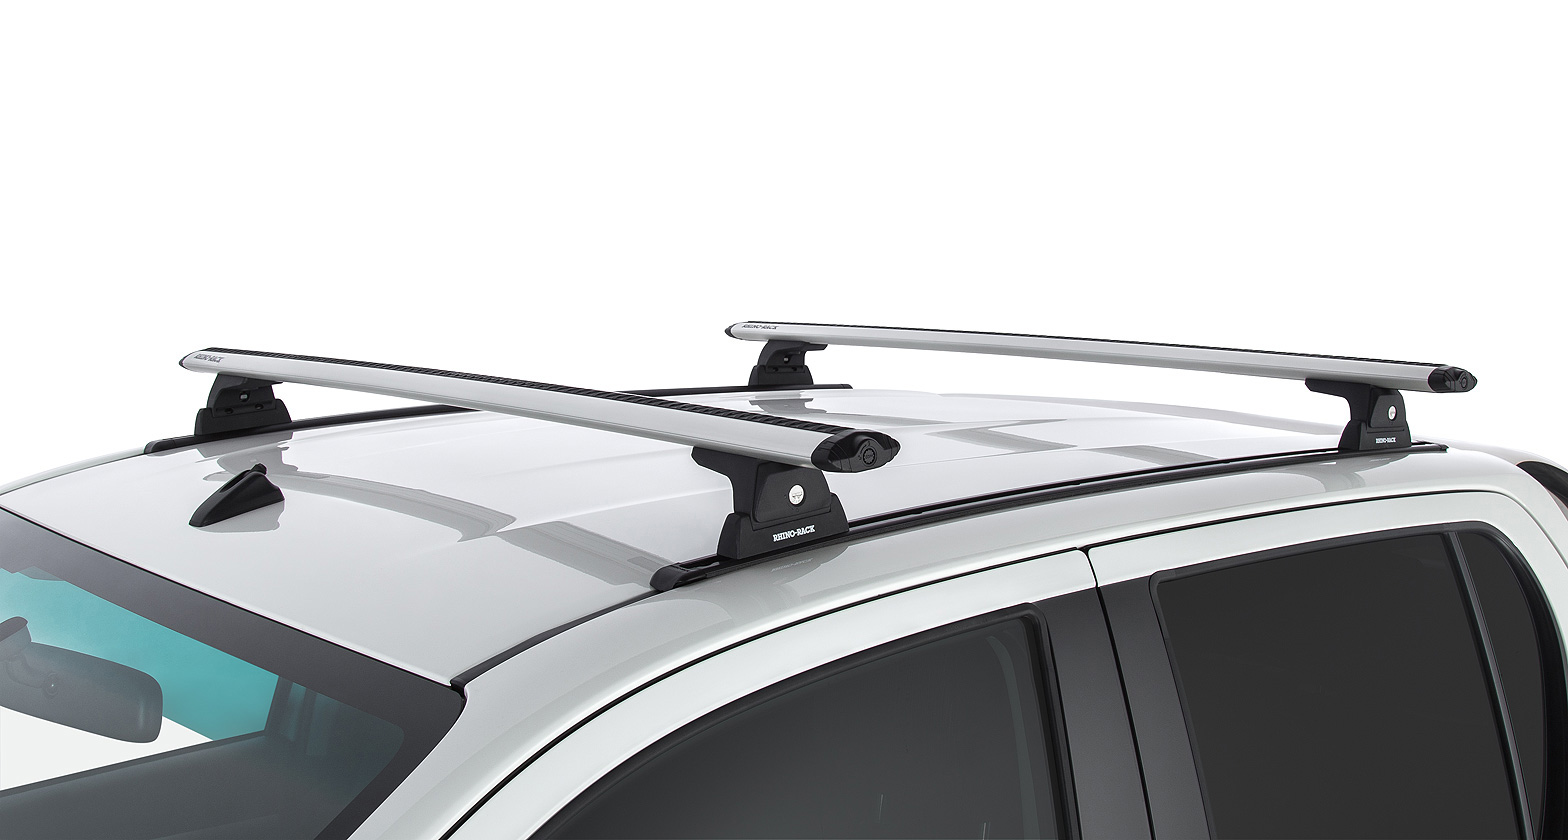 Hilux Roof Rack World